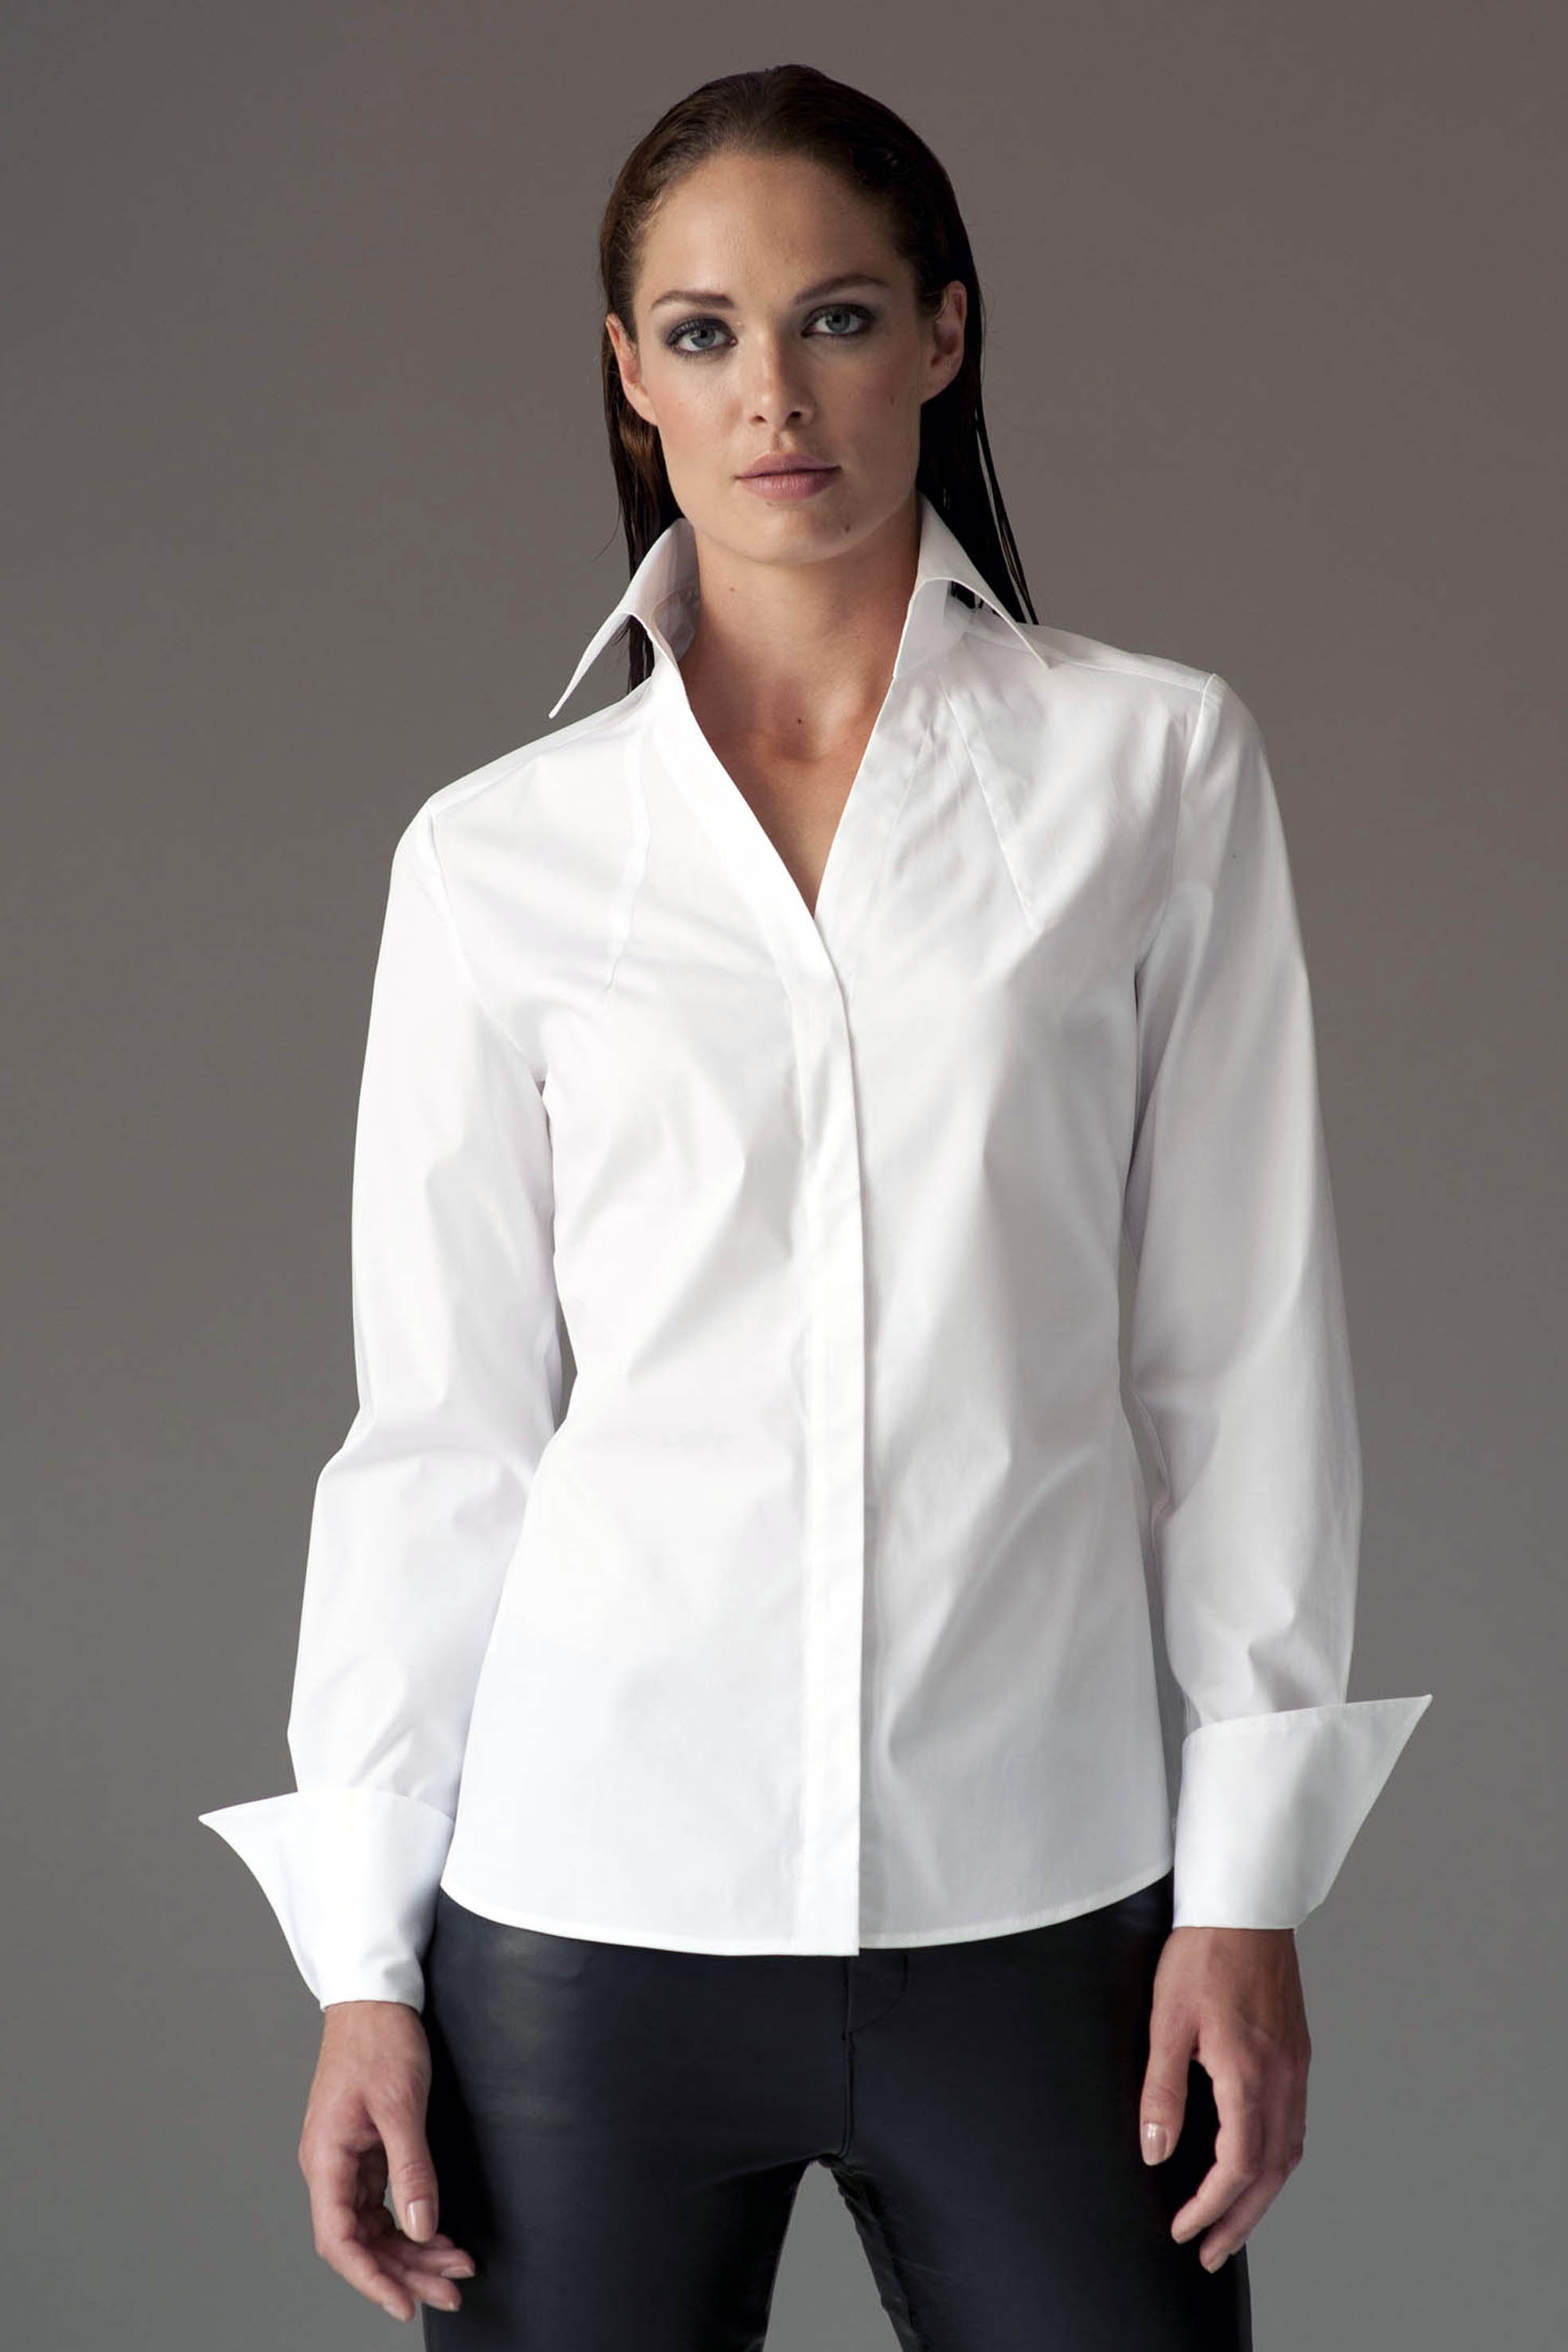 How to pair a classic white shirt | GLAMSQUAD MAGAZINE